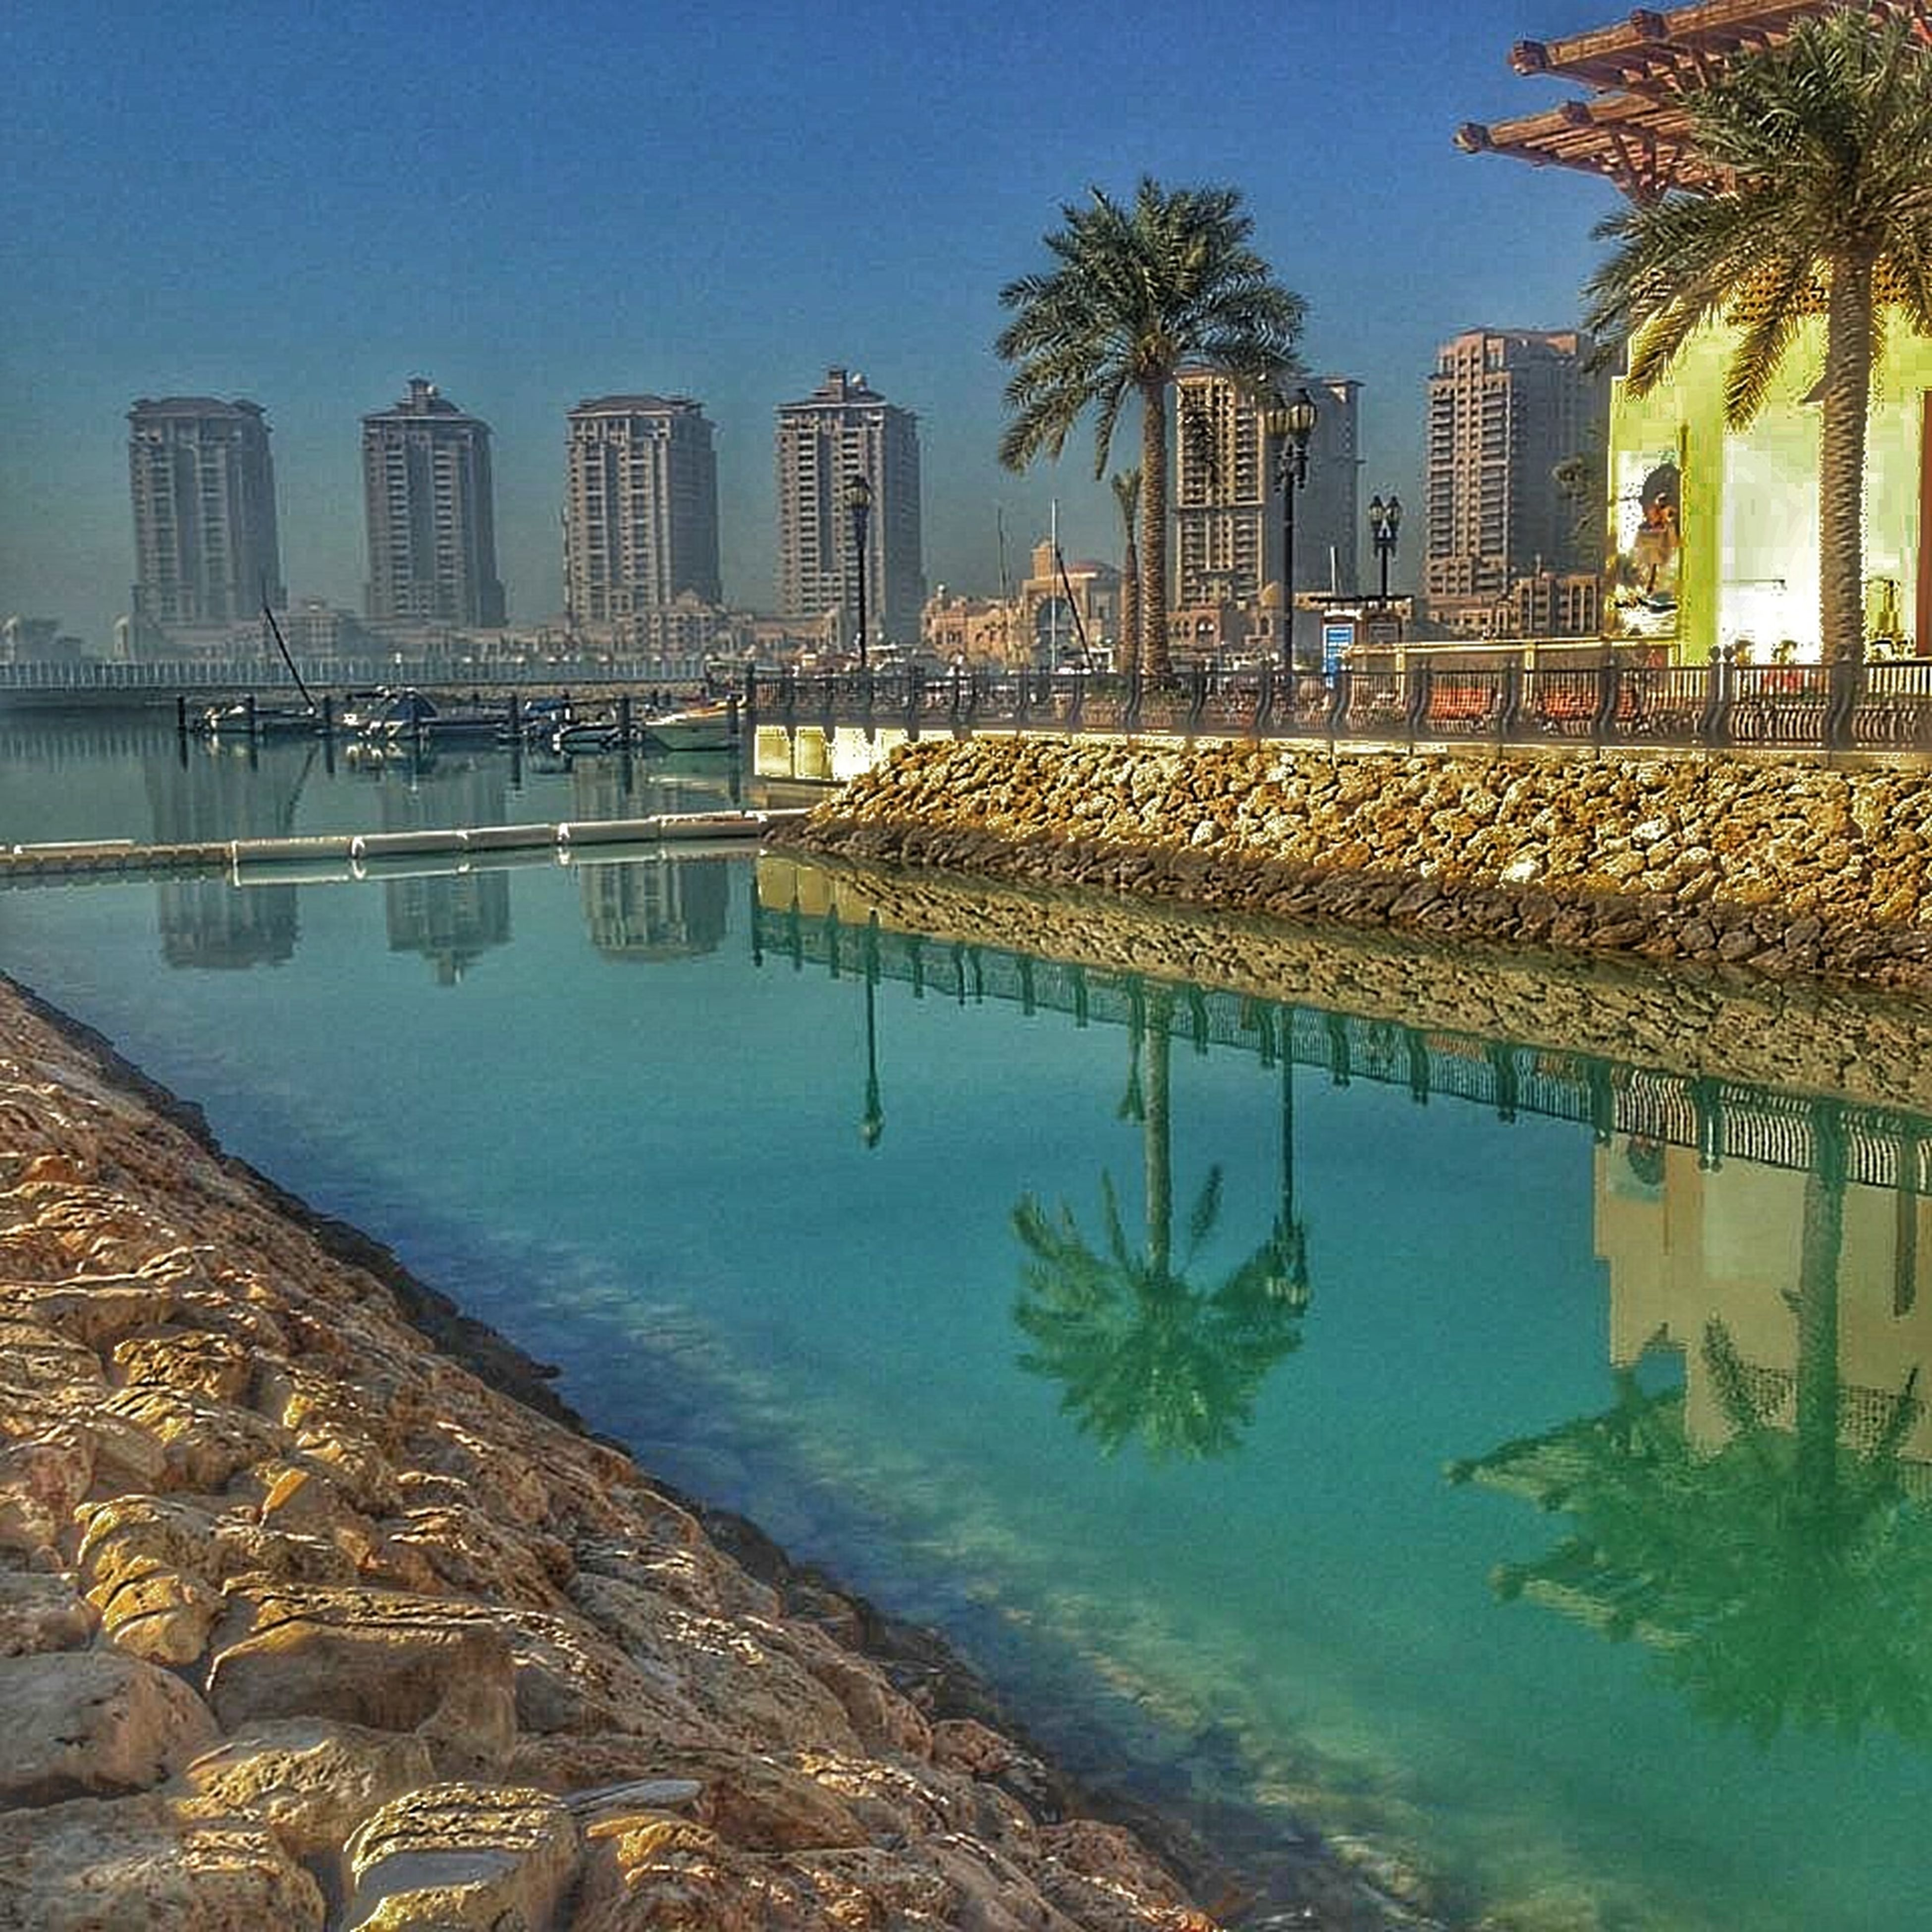 architecture, building exterior, built structure, water, tree, city, palm tree, clear sky, growth, sea, blue, sky, river, cityscape, reflection, residential building, tall - high, outdoors, beach, skyscraper